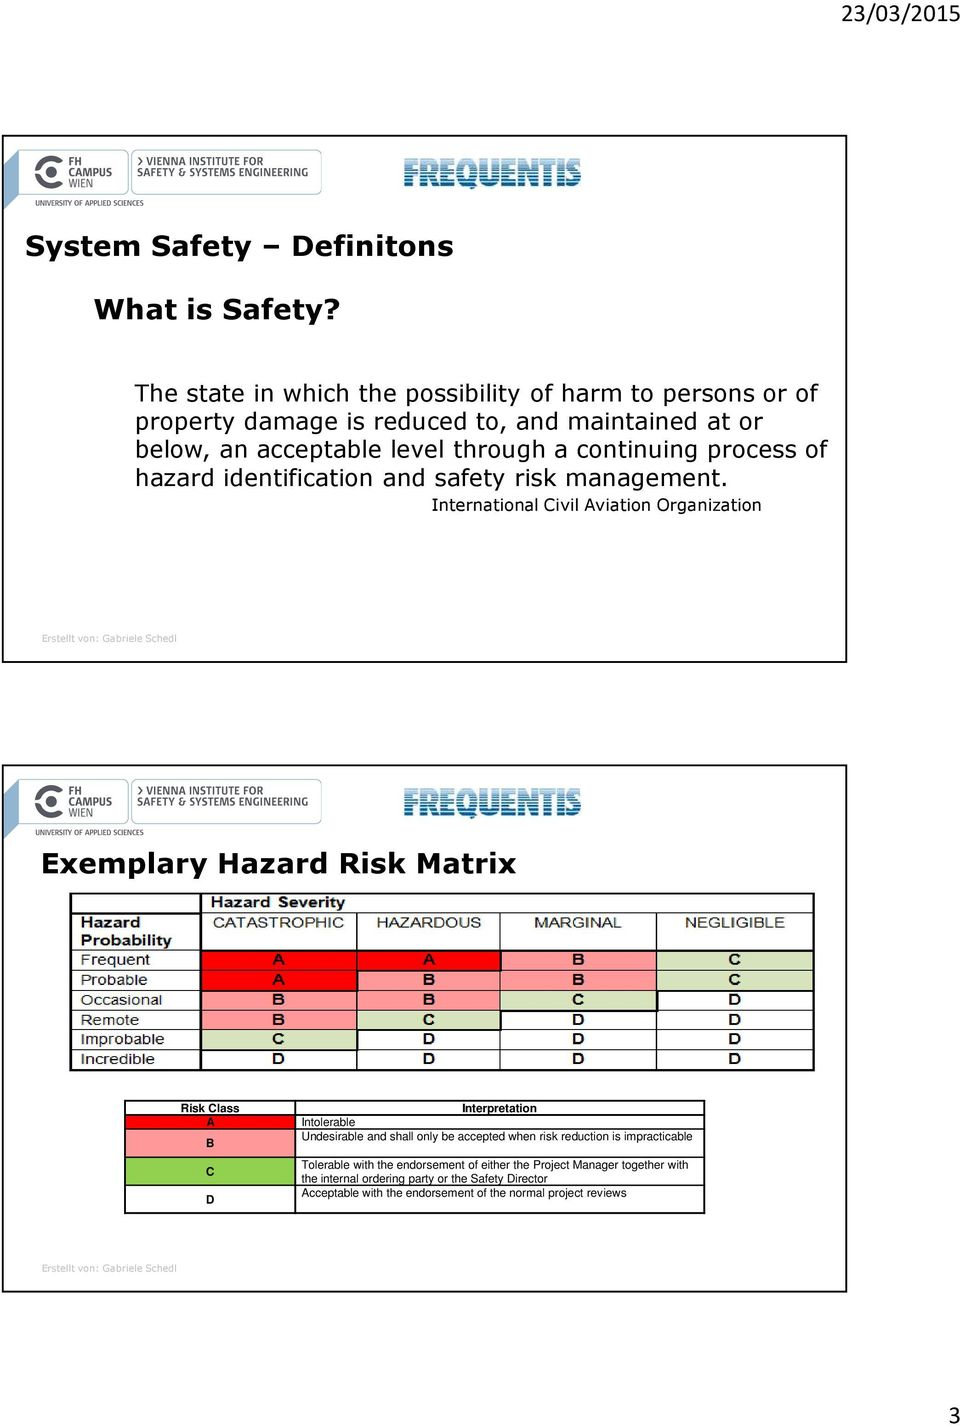 process of hazard identification and safety risk management.